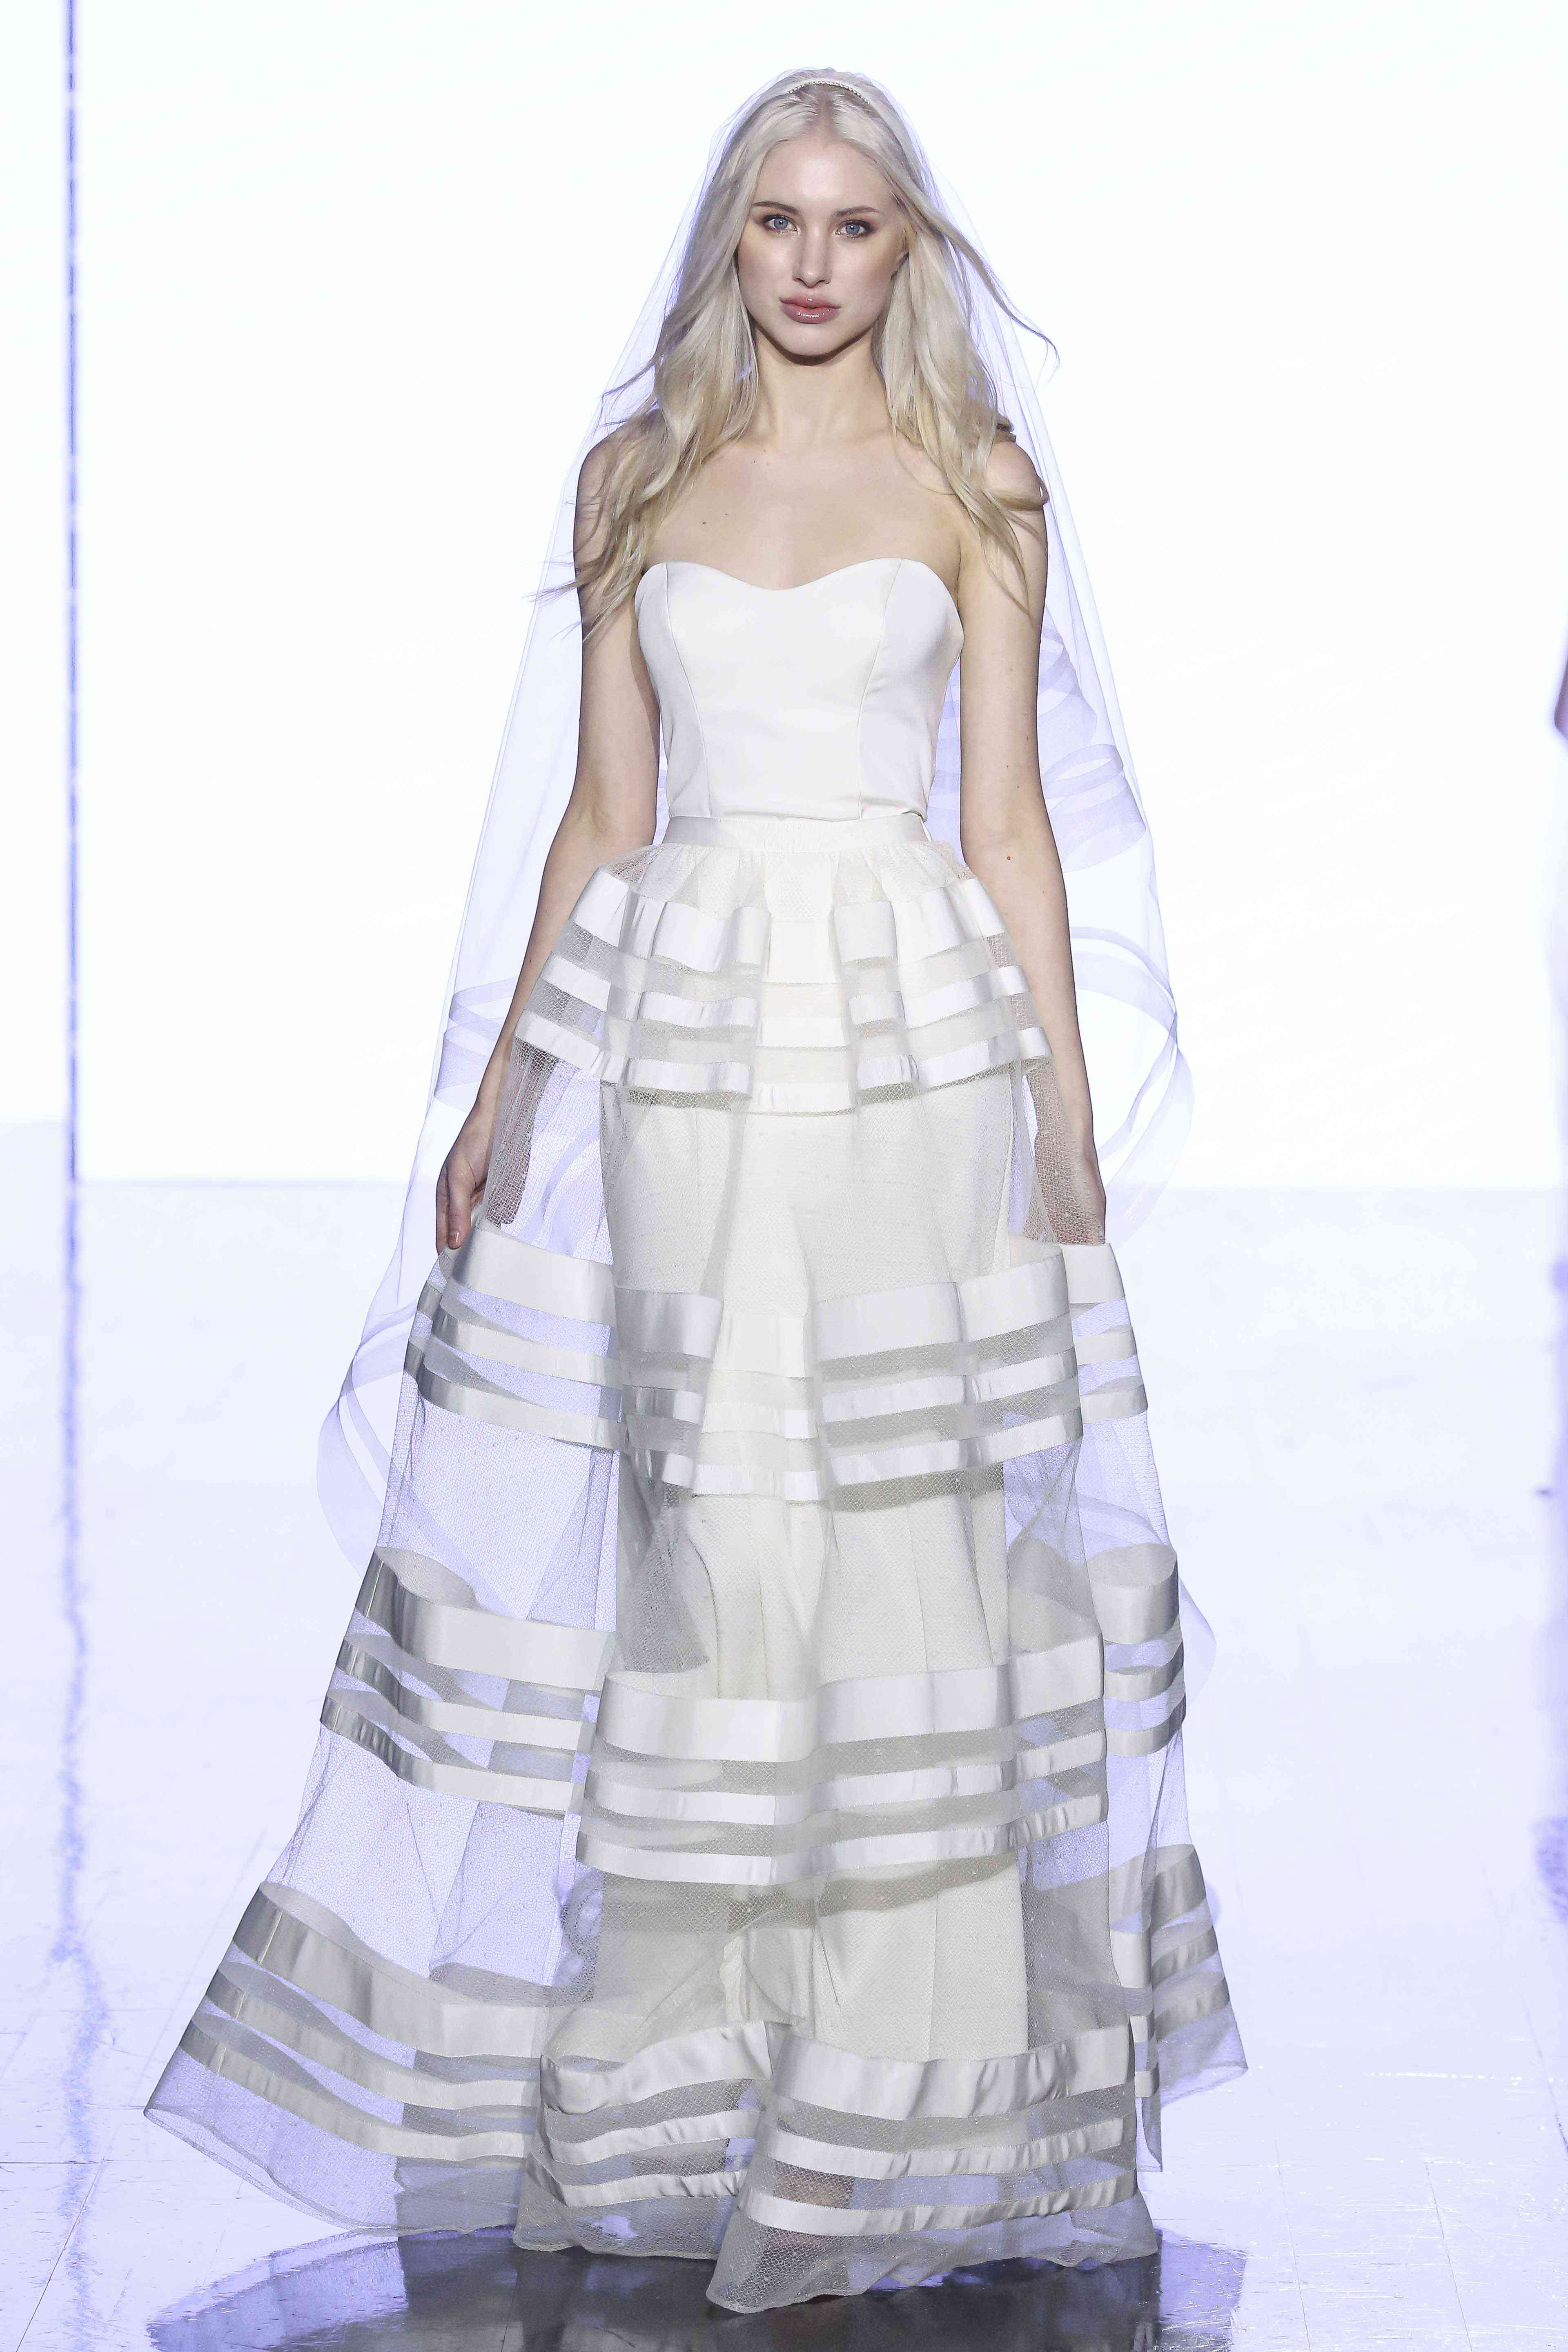 Model in strapless sheath dress with a satin-striped mesh overskirt